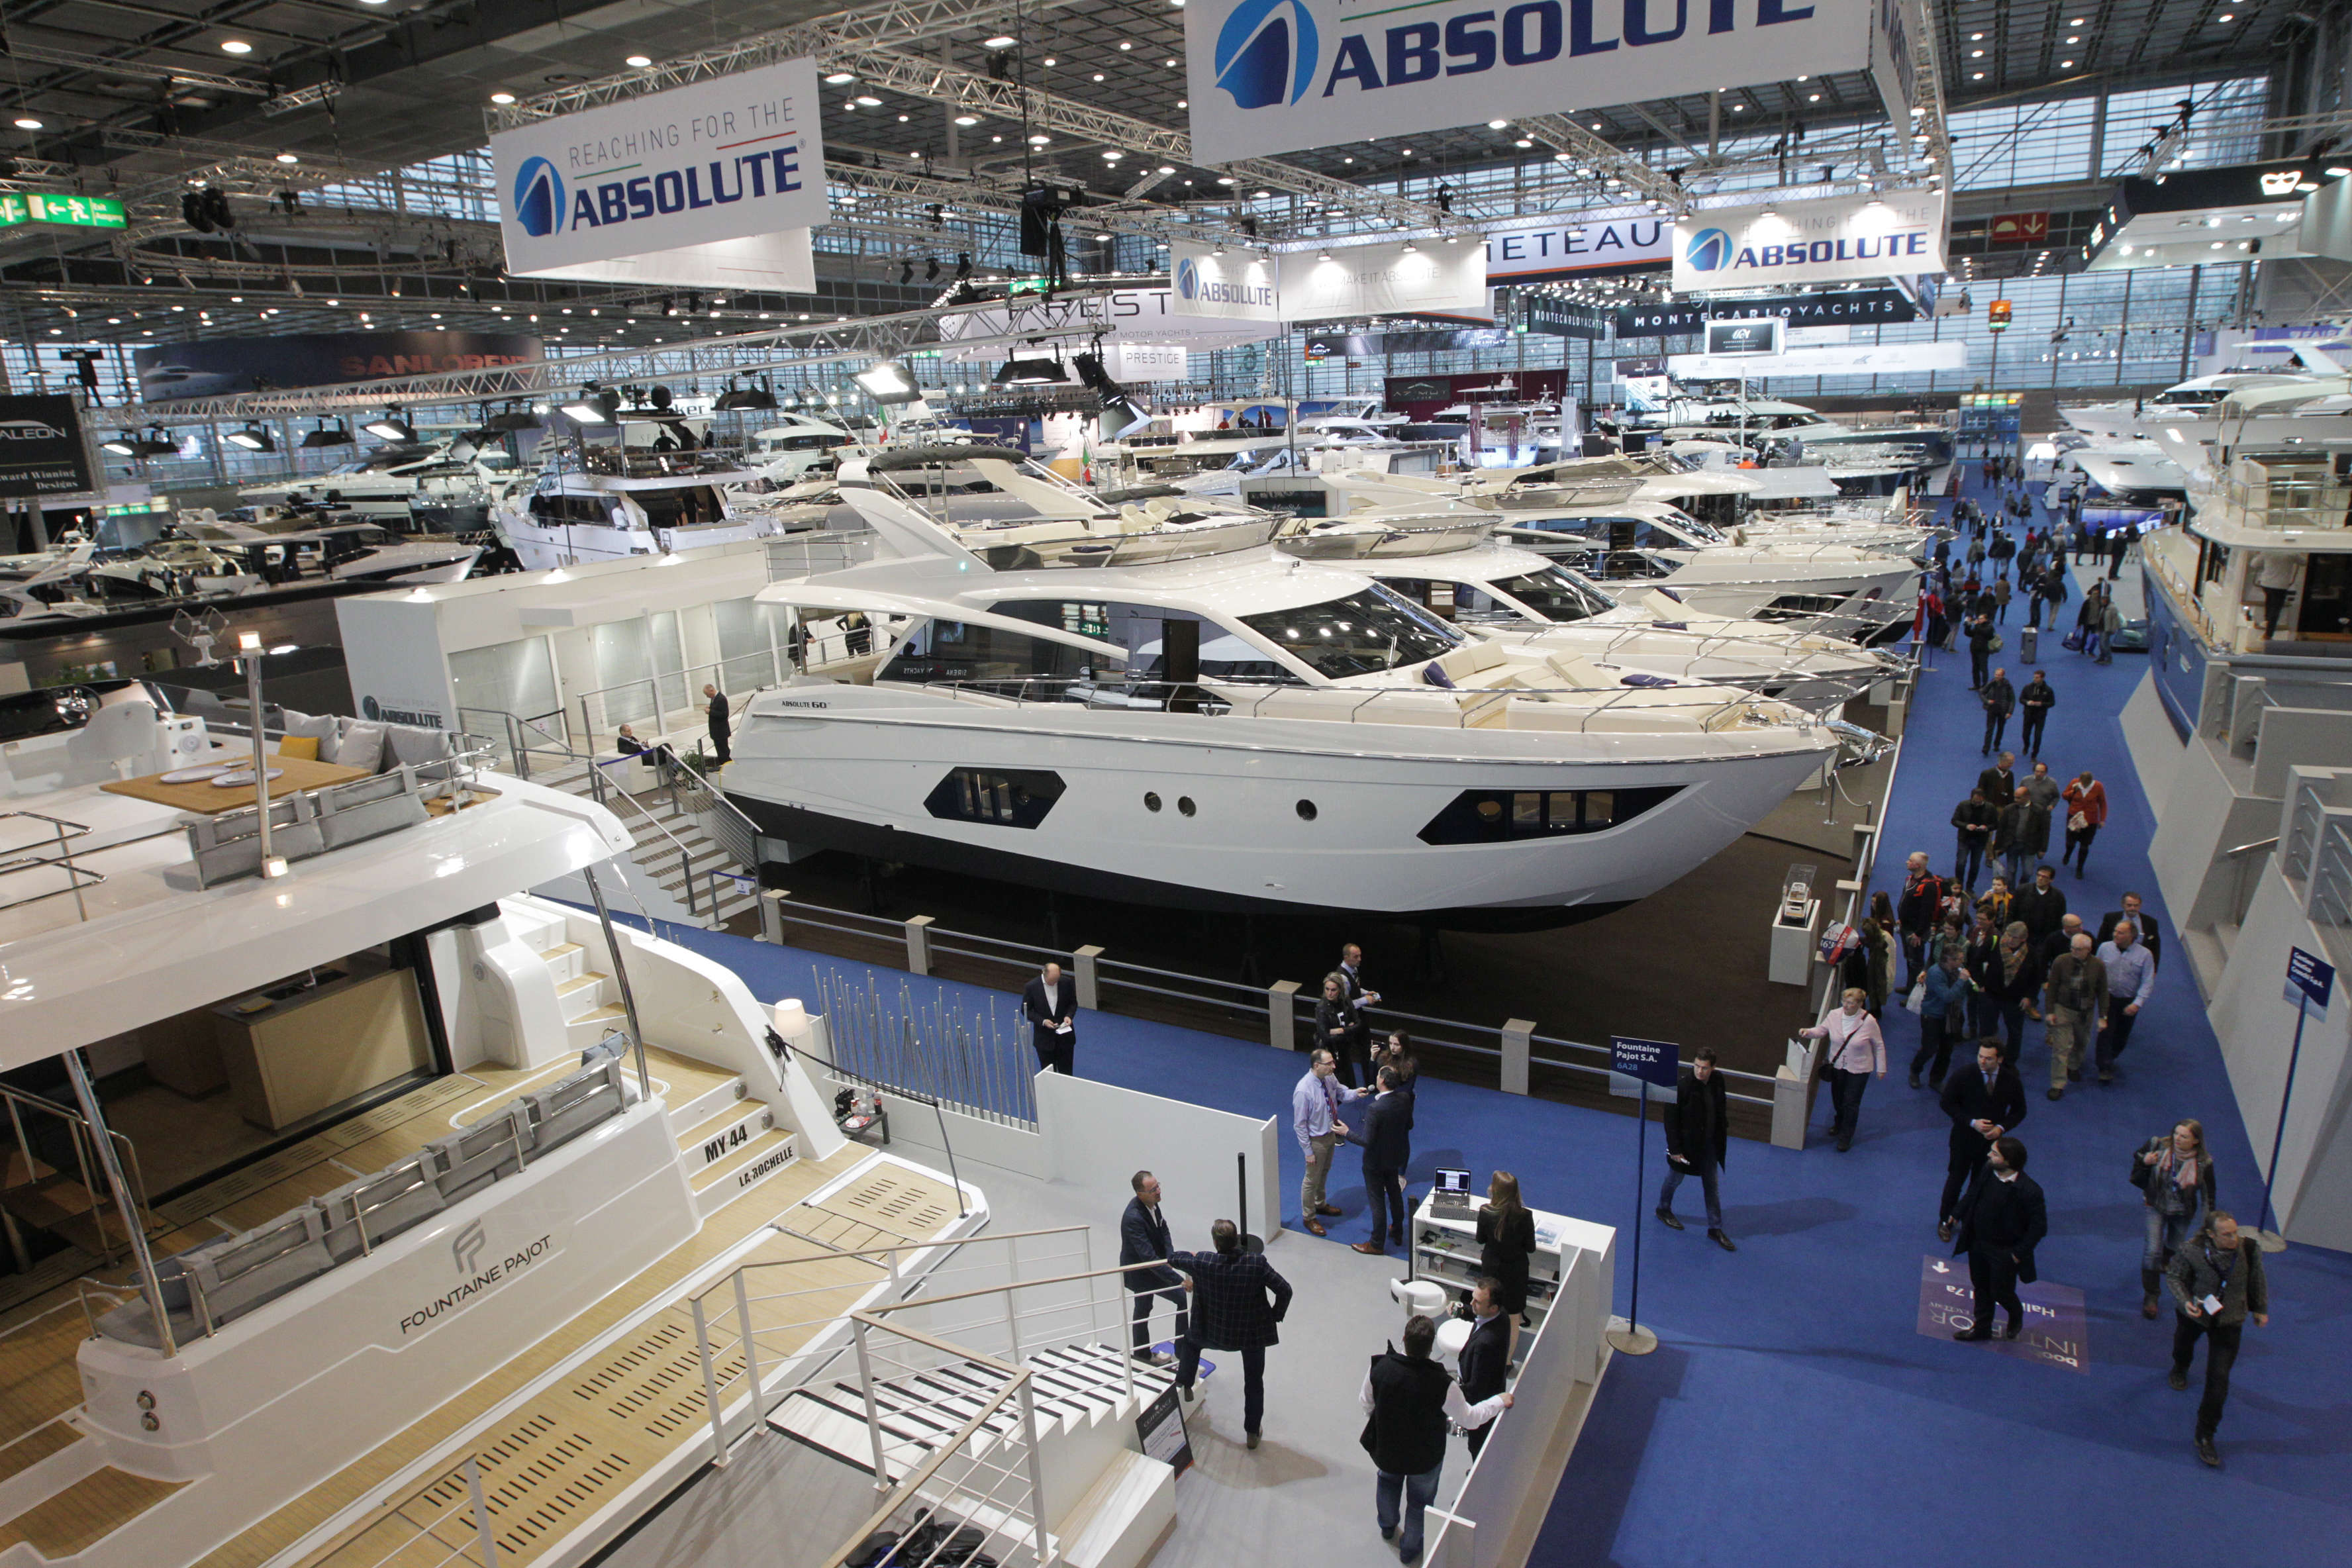 Salon Nautic Paris En Images Nautisme Le Salon Géant De Düsseldorf En